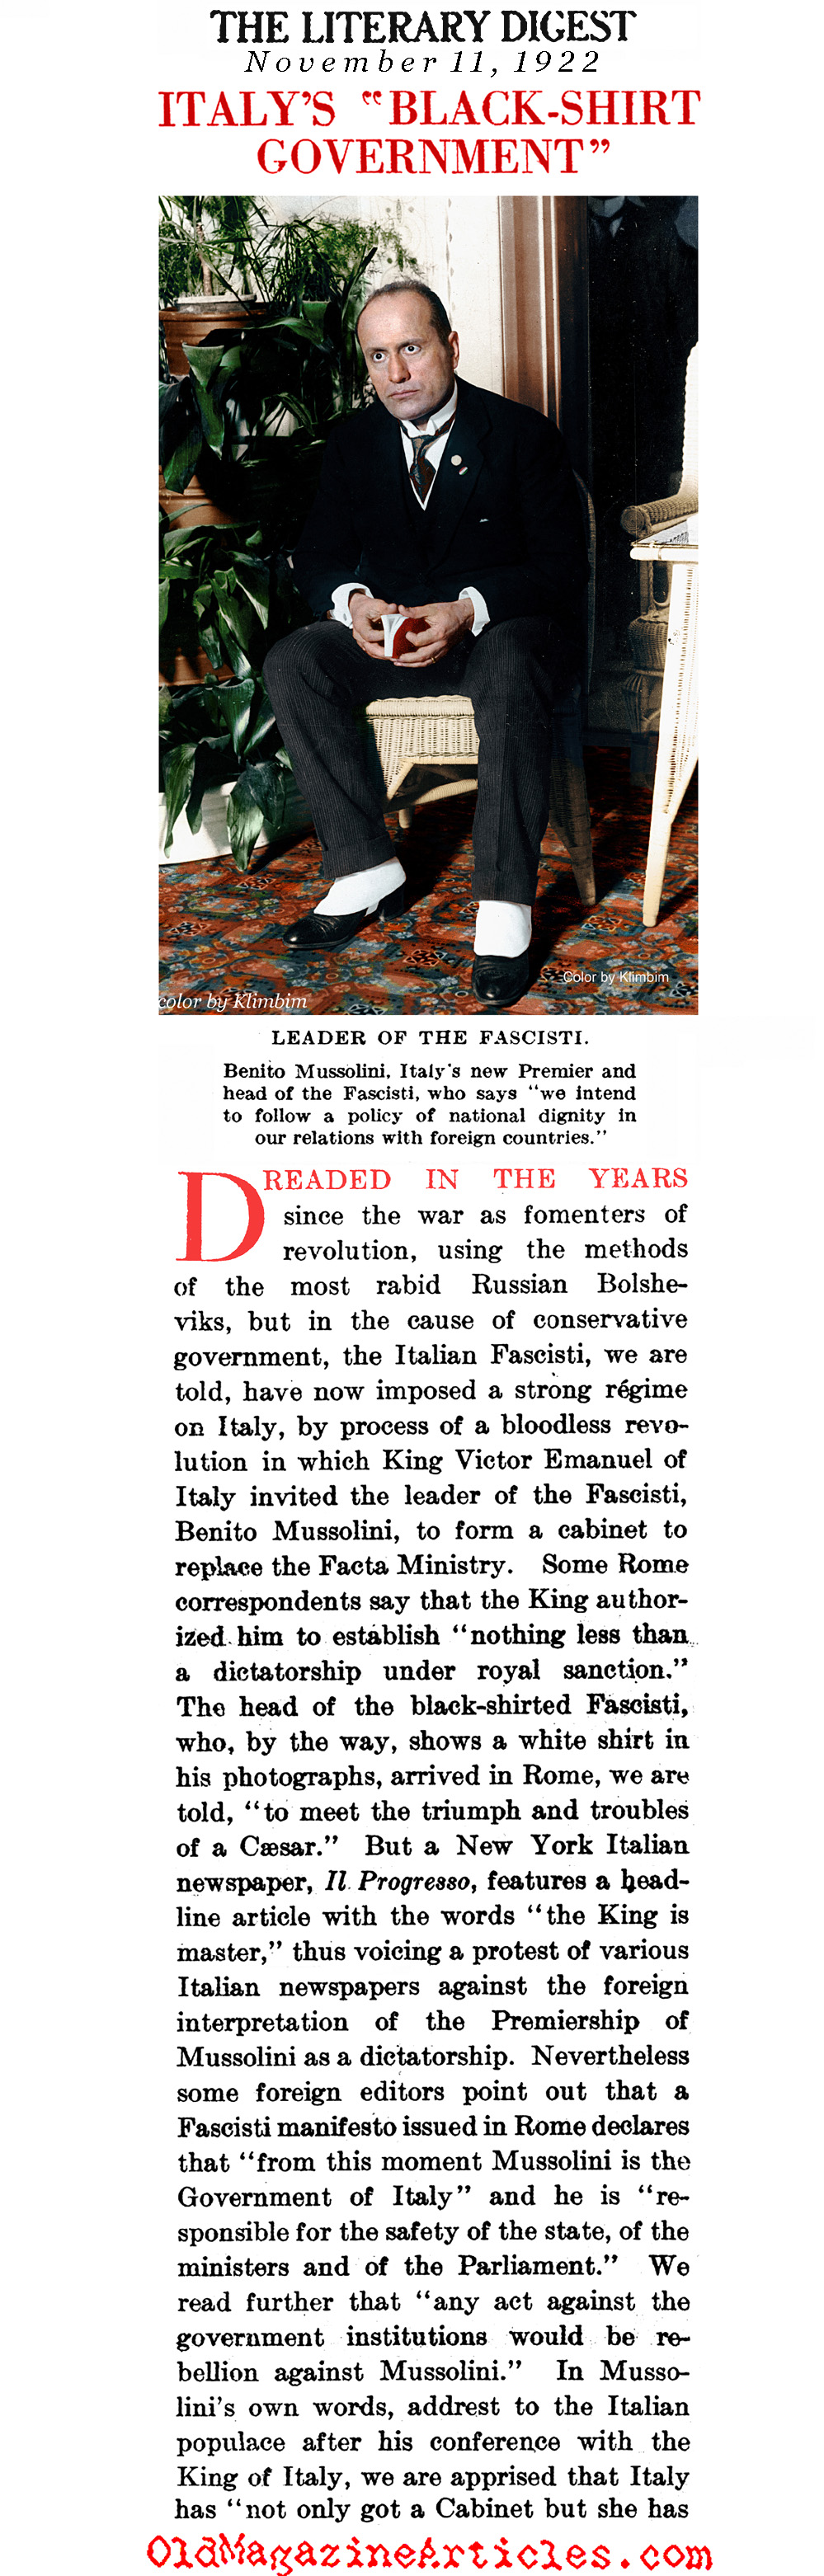 The King of Italy Smiles on the Fascists  (The Literary Digest, 1922)